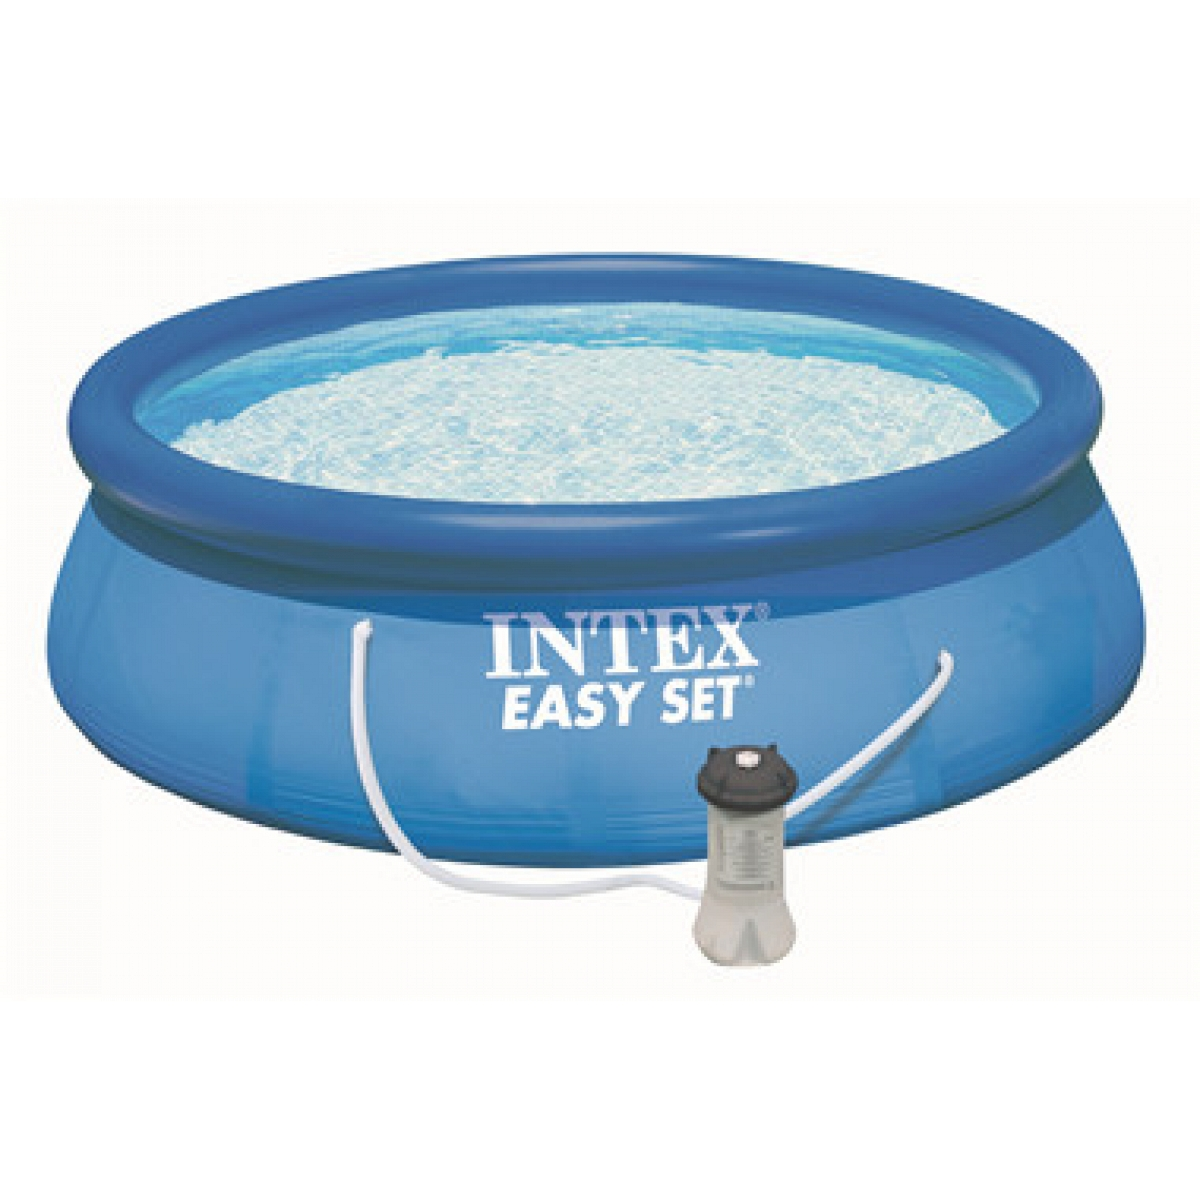 Gartenpool rund intex mod easy set 305x76 intex piscine for Gartenpool rechteckig